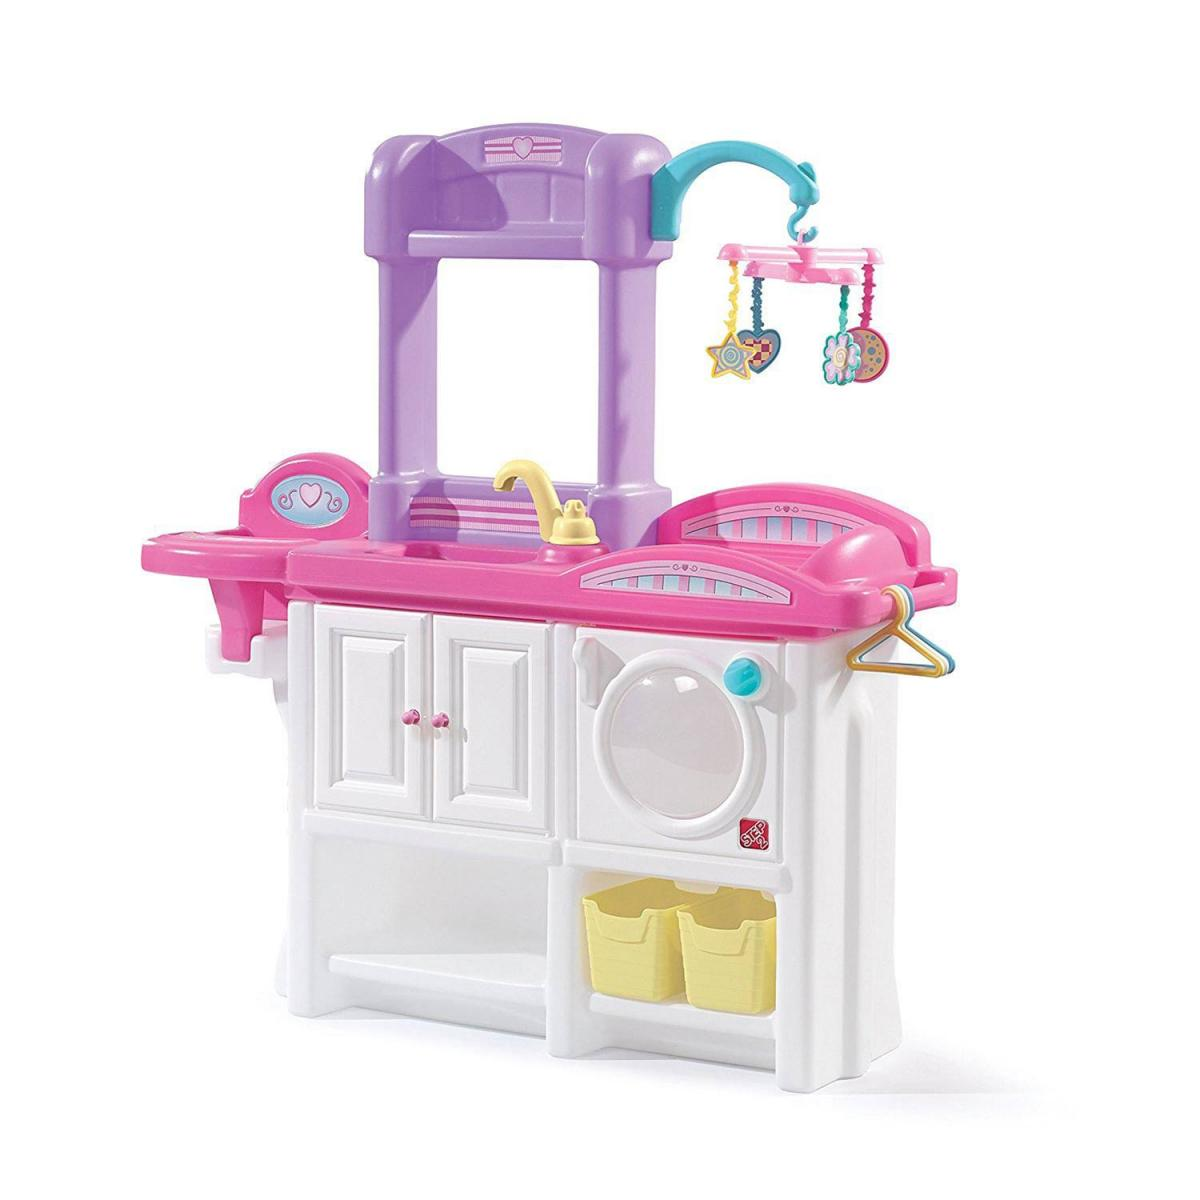 Step2Love and Care Deluxe Doll Pretend Play Nursery